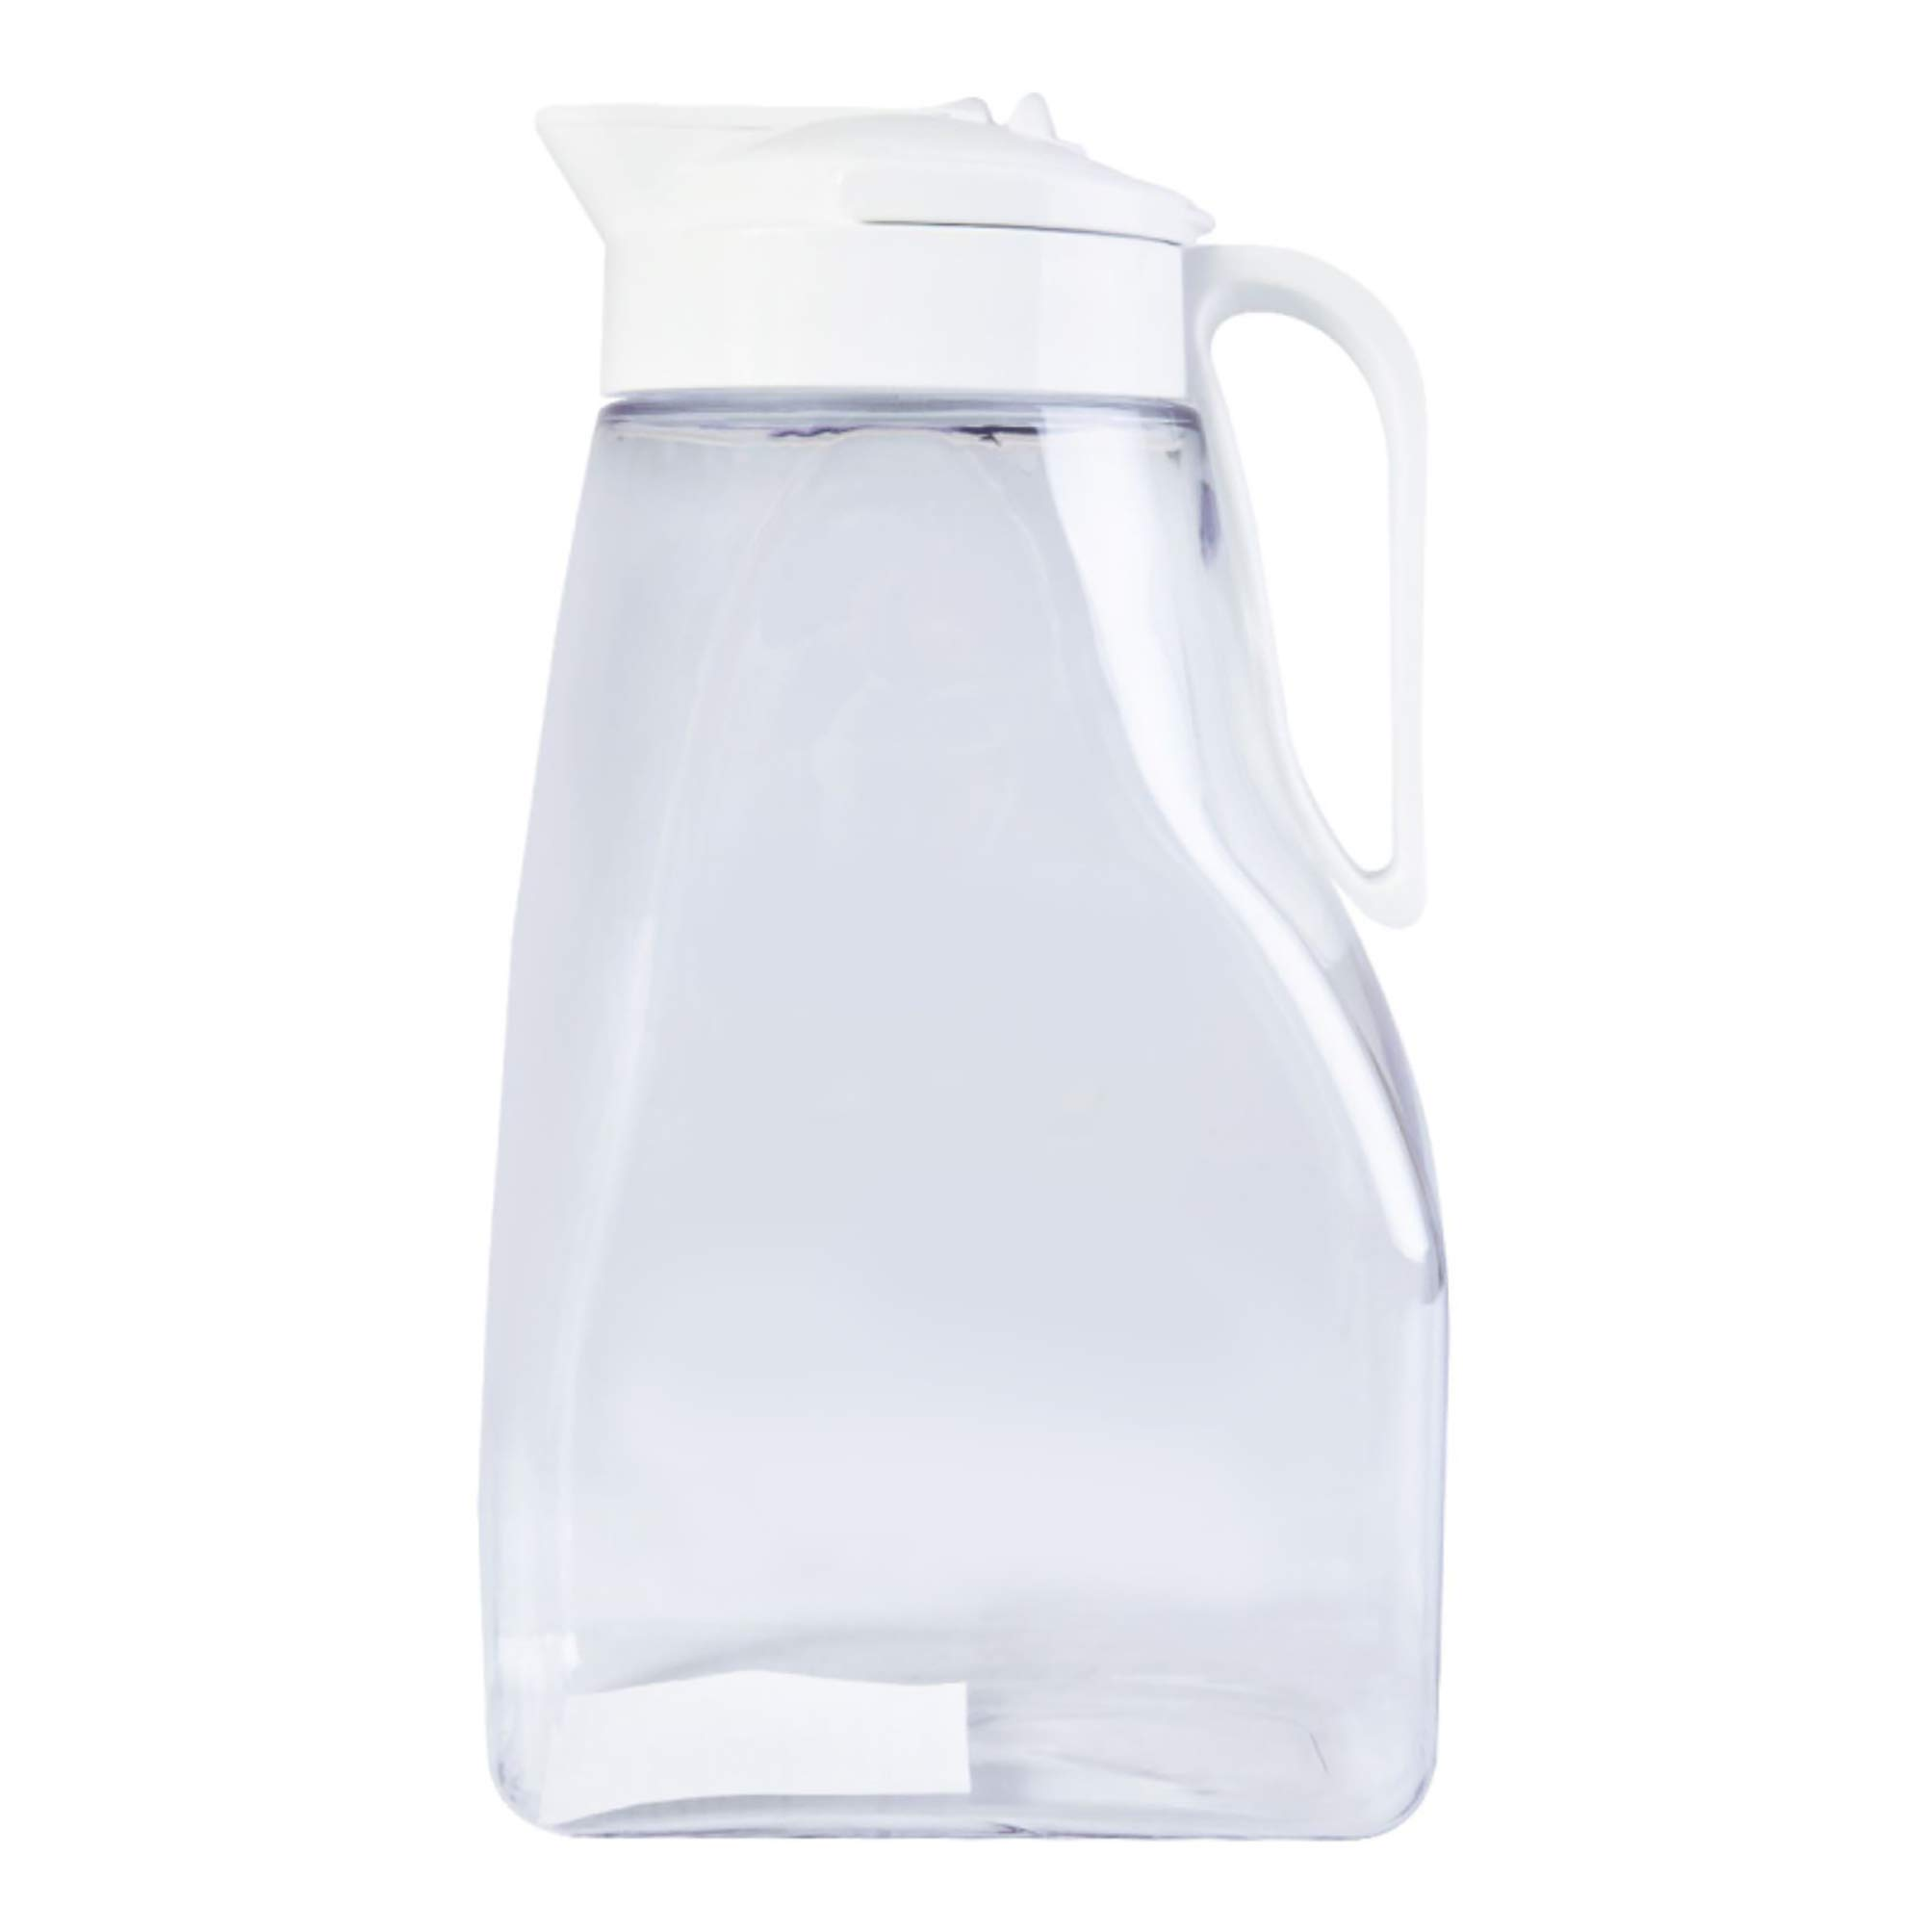 High Heat Resistant One-touch Airtight Pitcher 3.1QT (99oz) for Water, Coffee, Tea, Other Hot or Cold Beverages | Leak Proof & Space Saving, Dishwasher Safe, BPA Free | Made in Japan